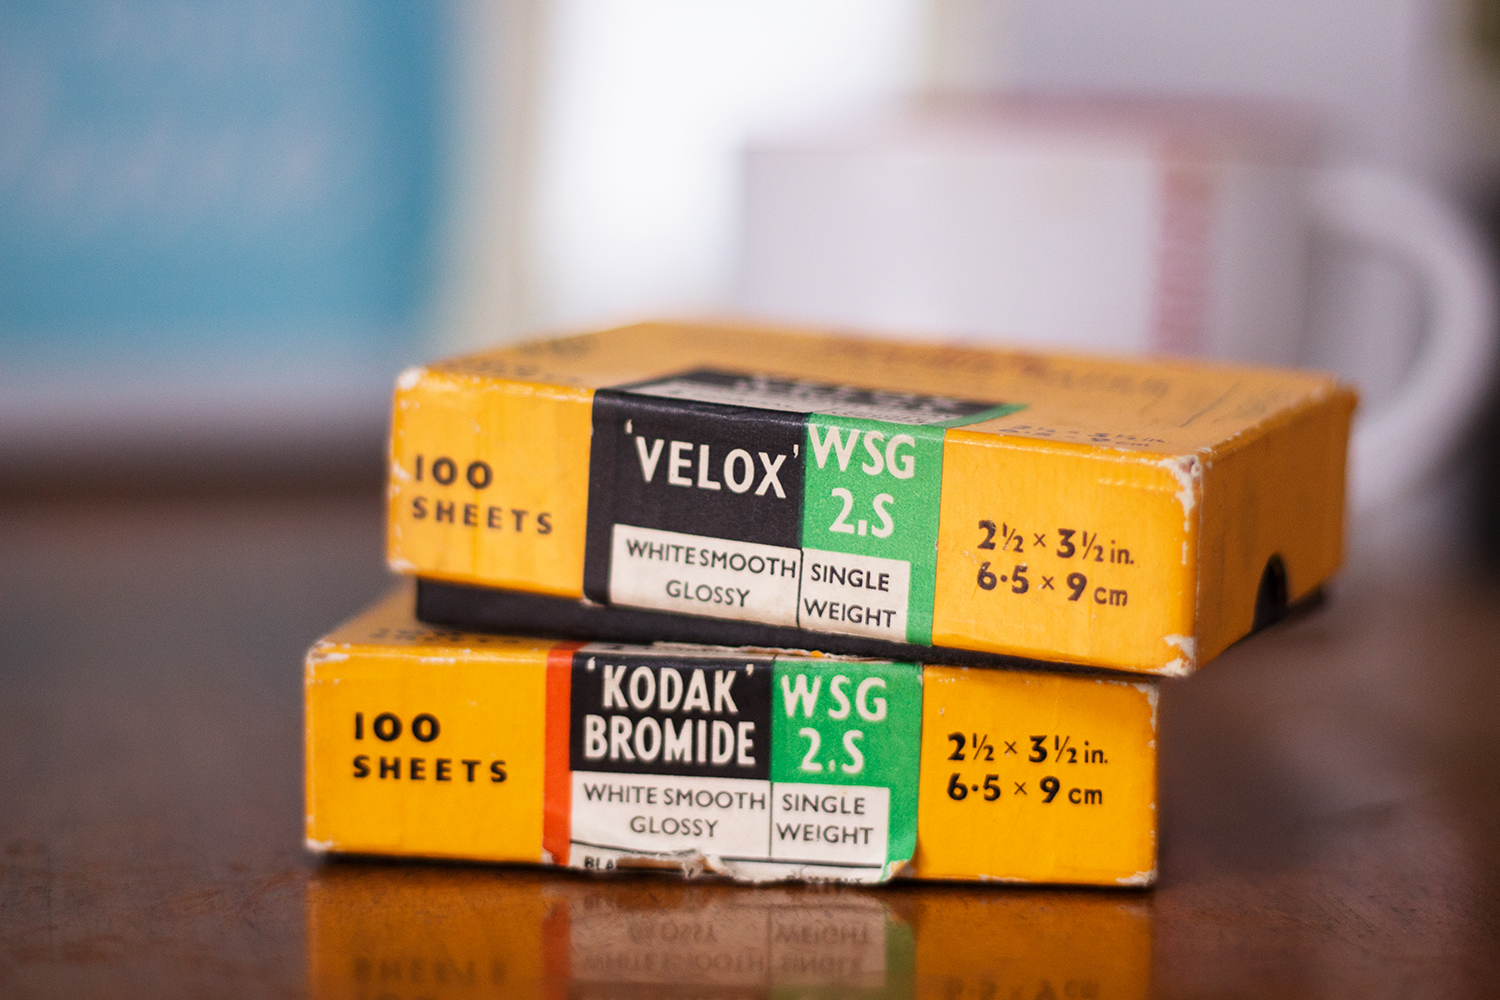 Kodak photographic paper prints